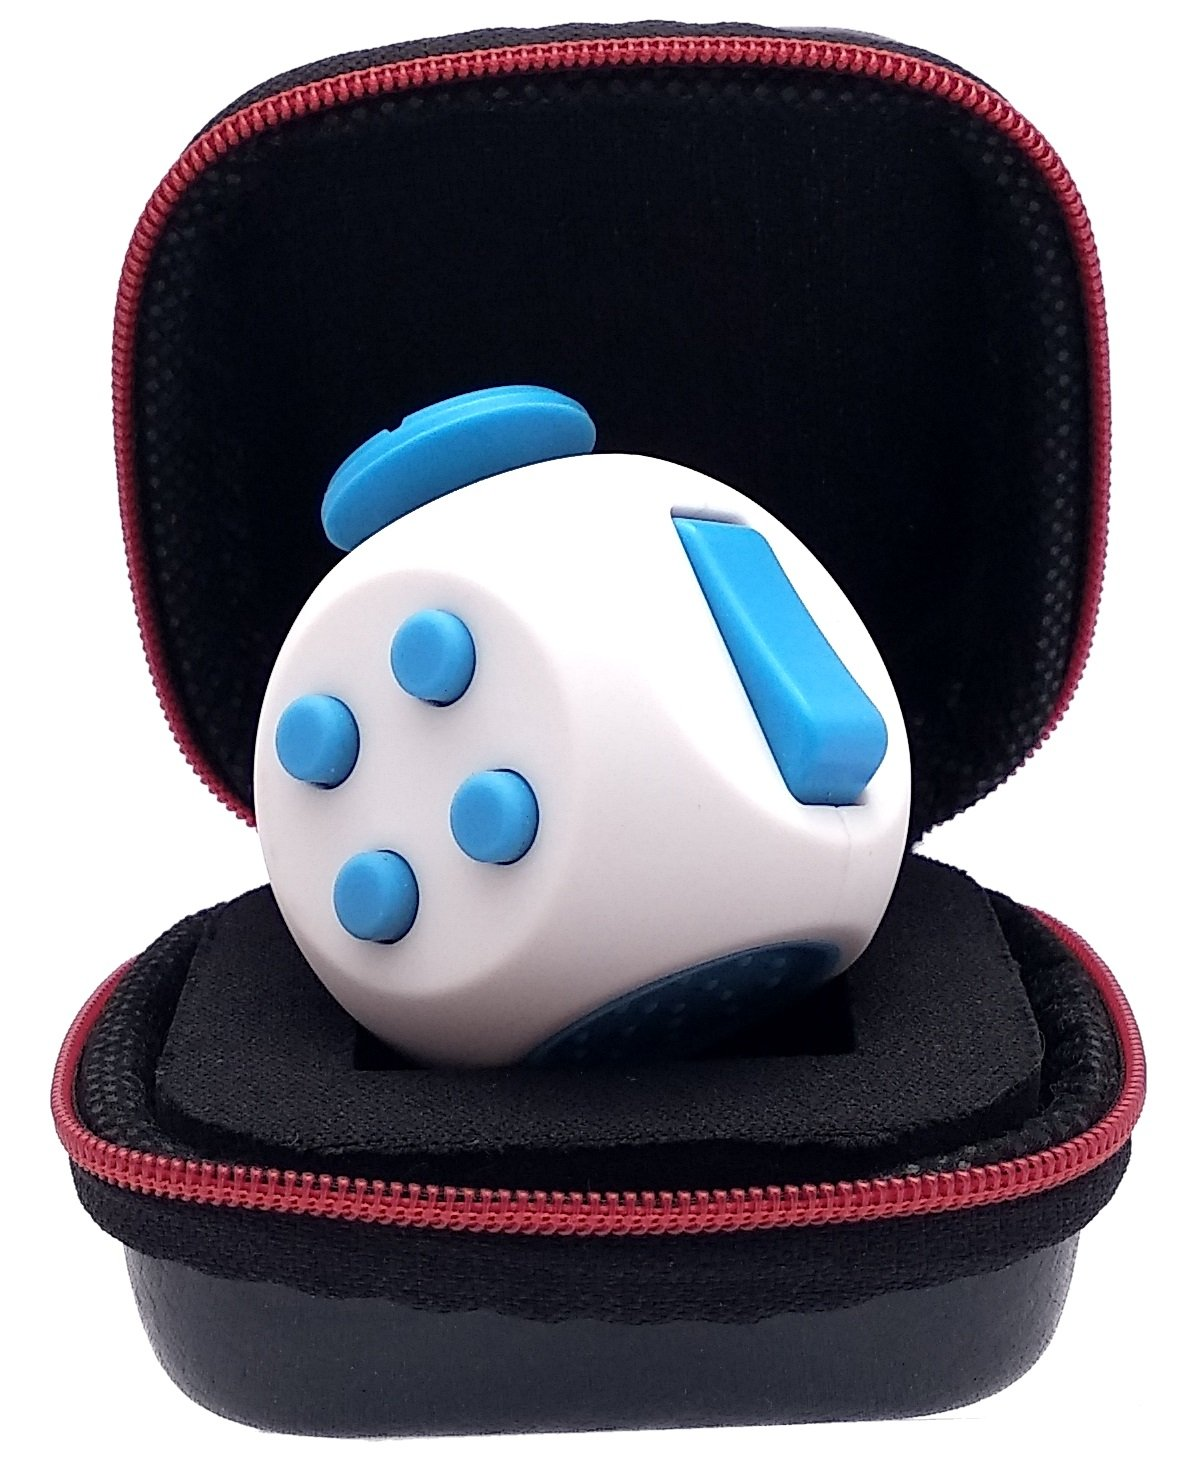 PILPOC theFube Fidget Cube - Premium Quality 12 Sides Fidget Cube Dice Dodecagon with Exclusive Carry Case, Durable, Relieve Stress and Anxiety, for ADD, ADHD, OCD by (Green & Mix Colors)